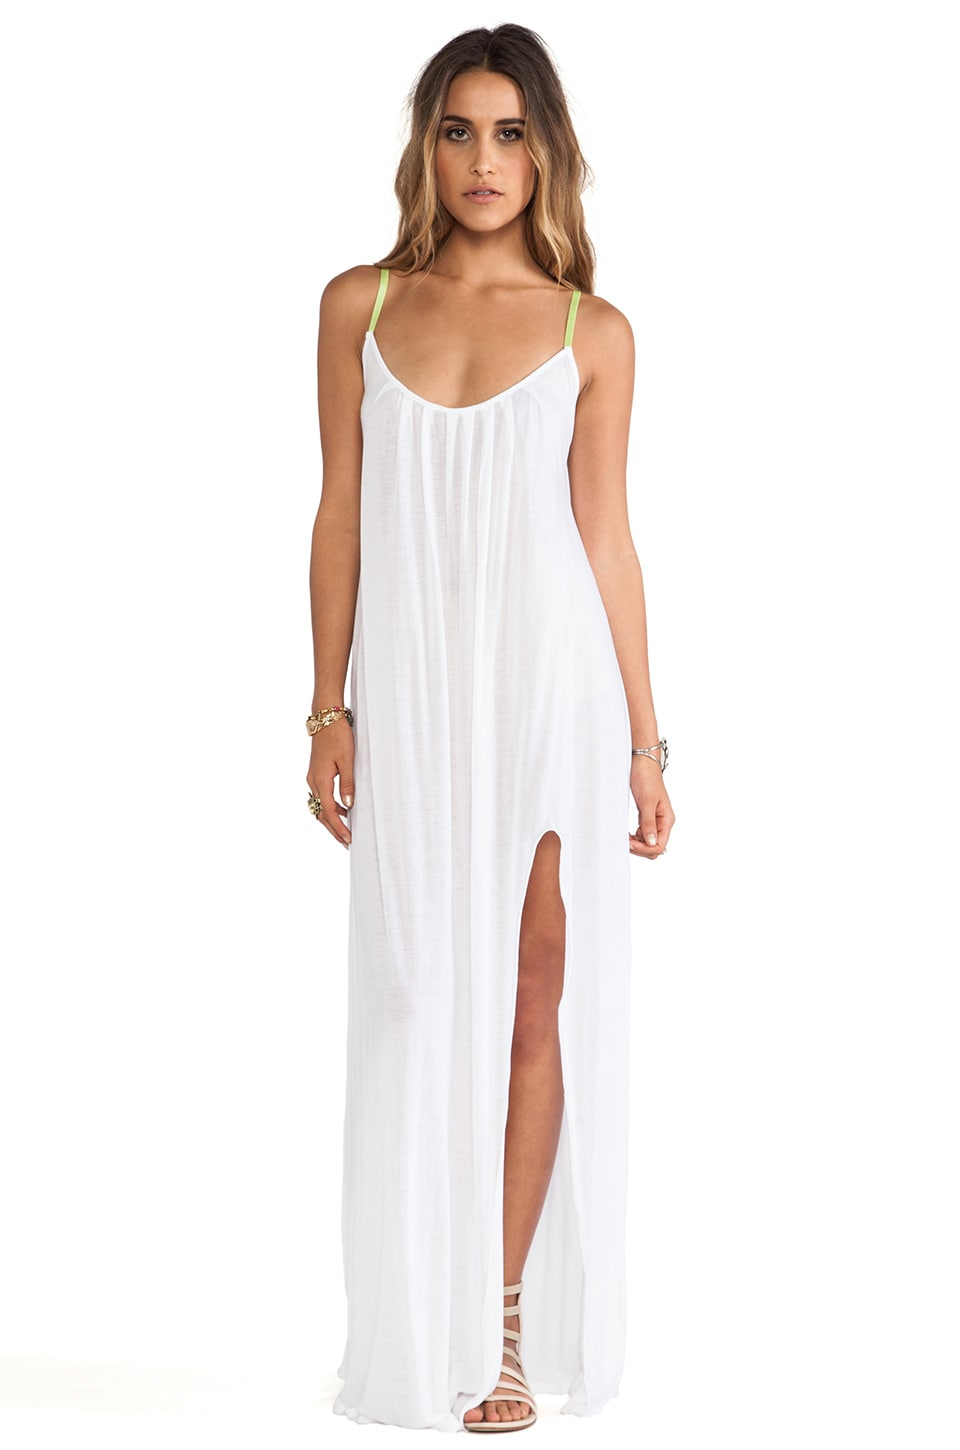 Blue Life Festival Maxi Dress in White